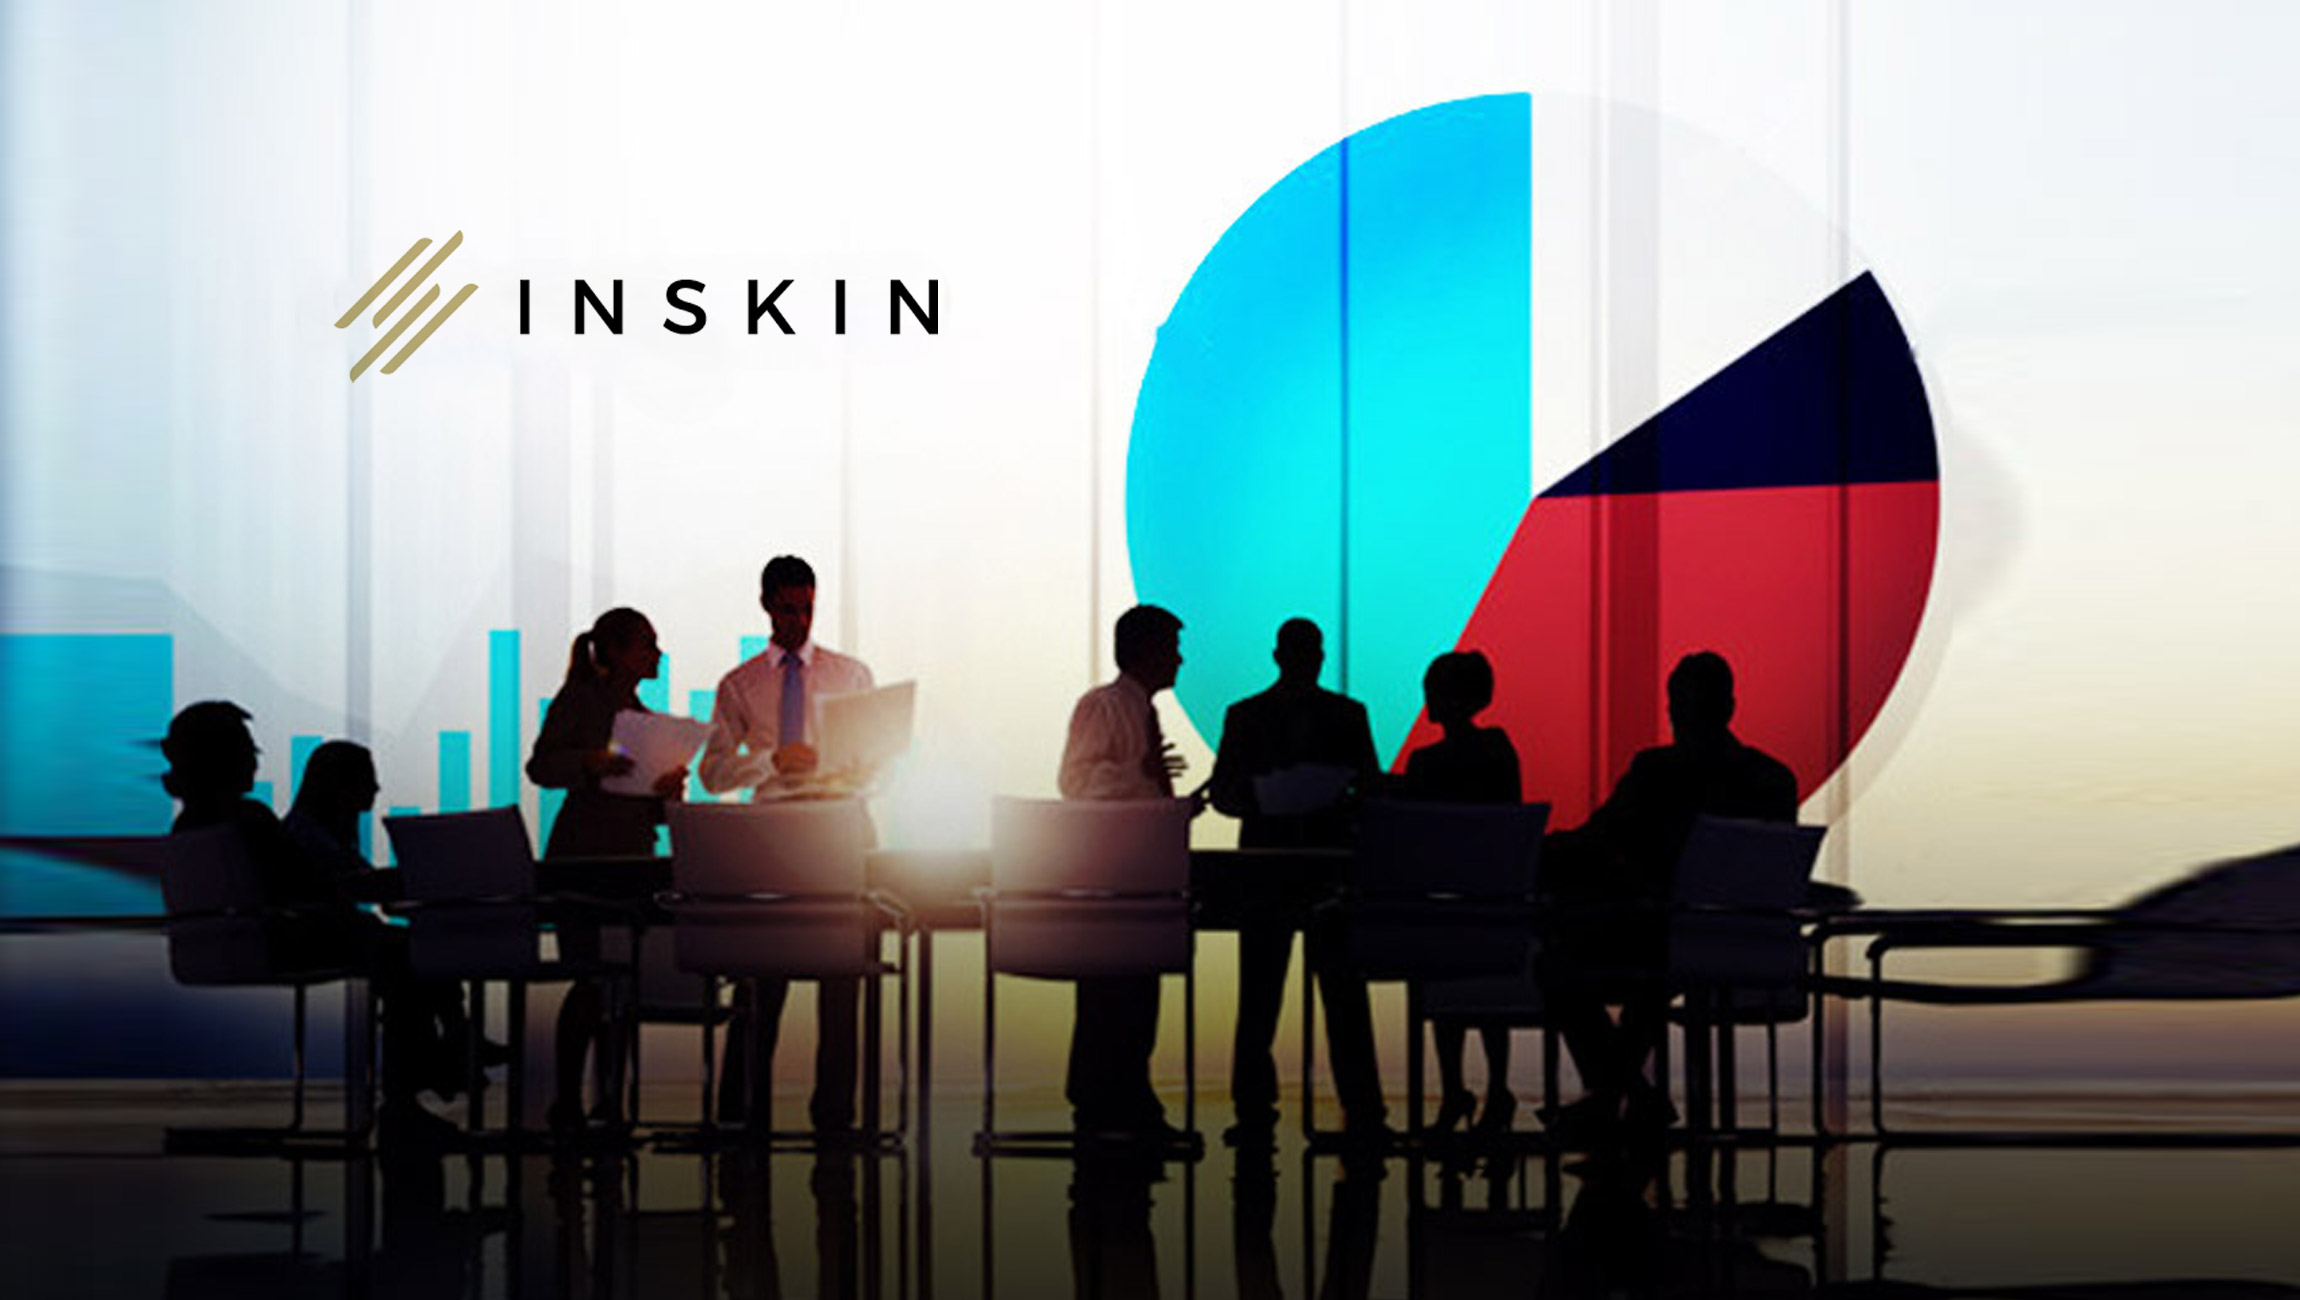 Inskin Media Makes strategic Hires in APAC Region as It Doubles Down on Growth 1